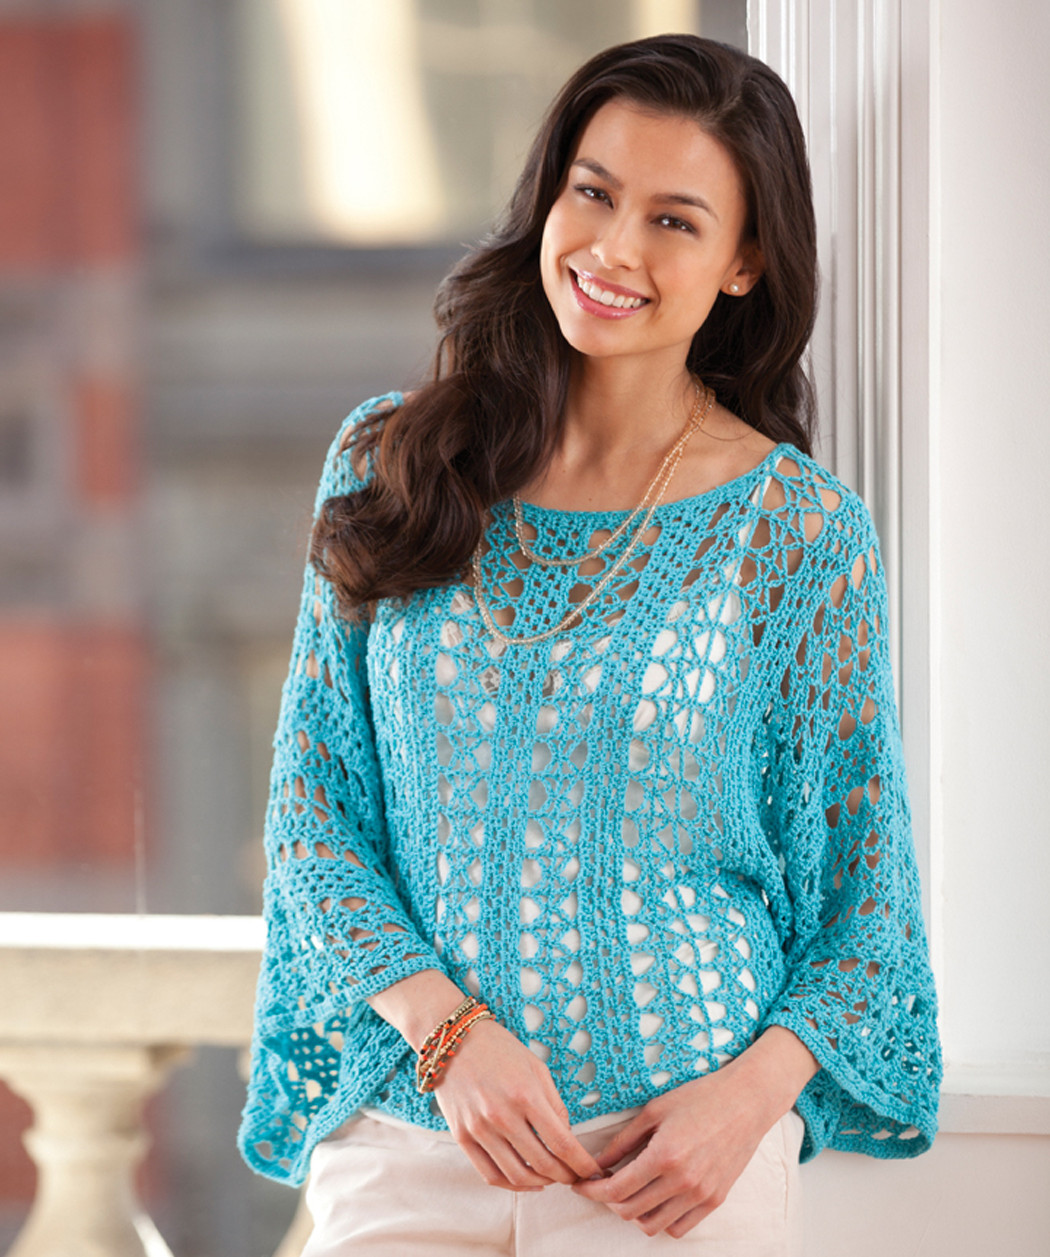 Red Heart Crochet Patterns Luxury 12 Holey tops for Summer Of Charming 49 Models Red Heart Crochet Patterns